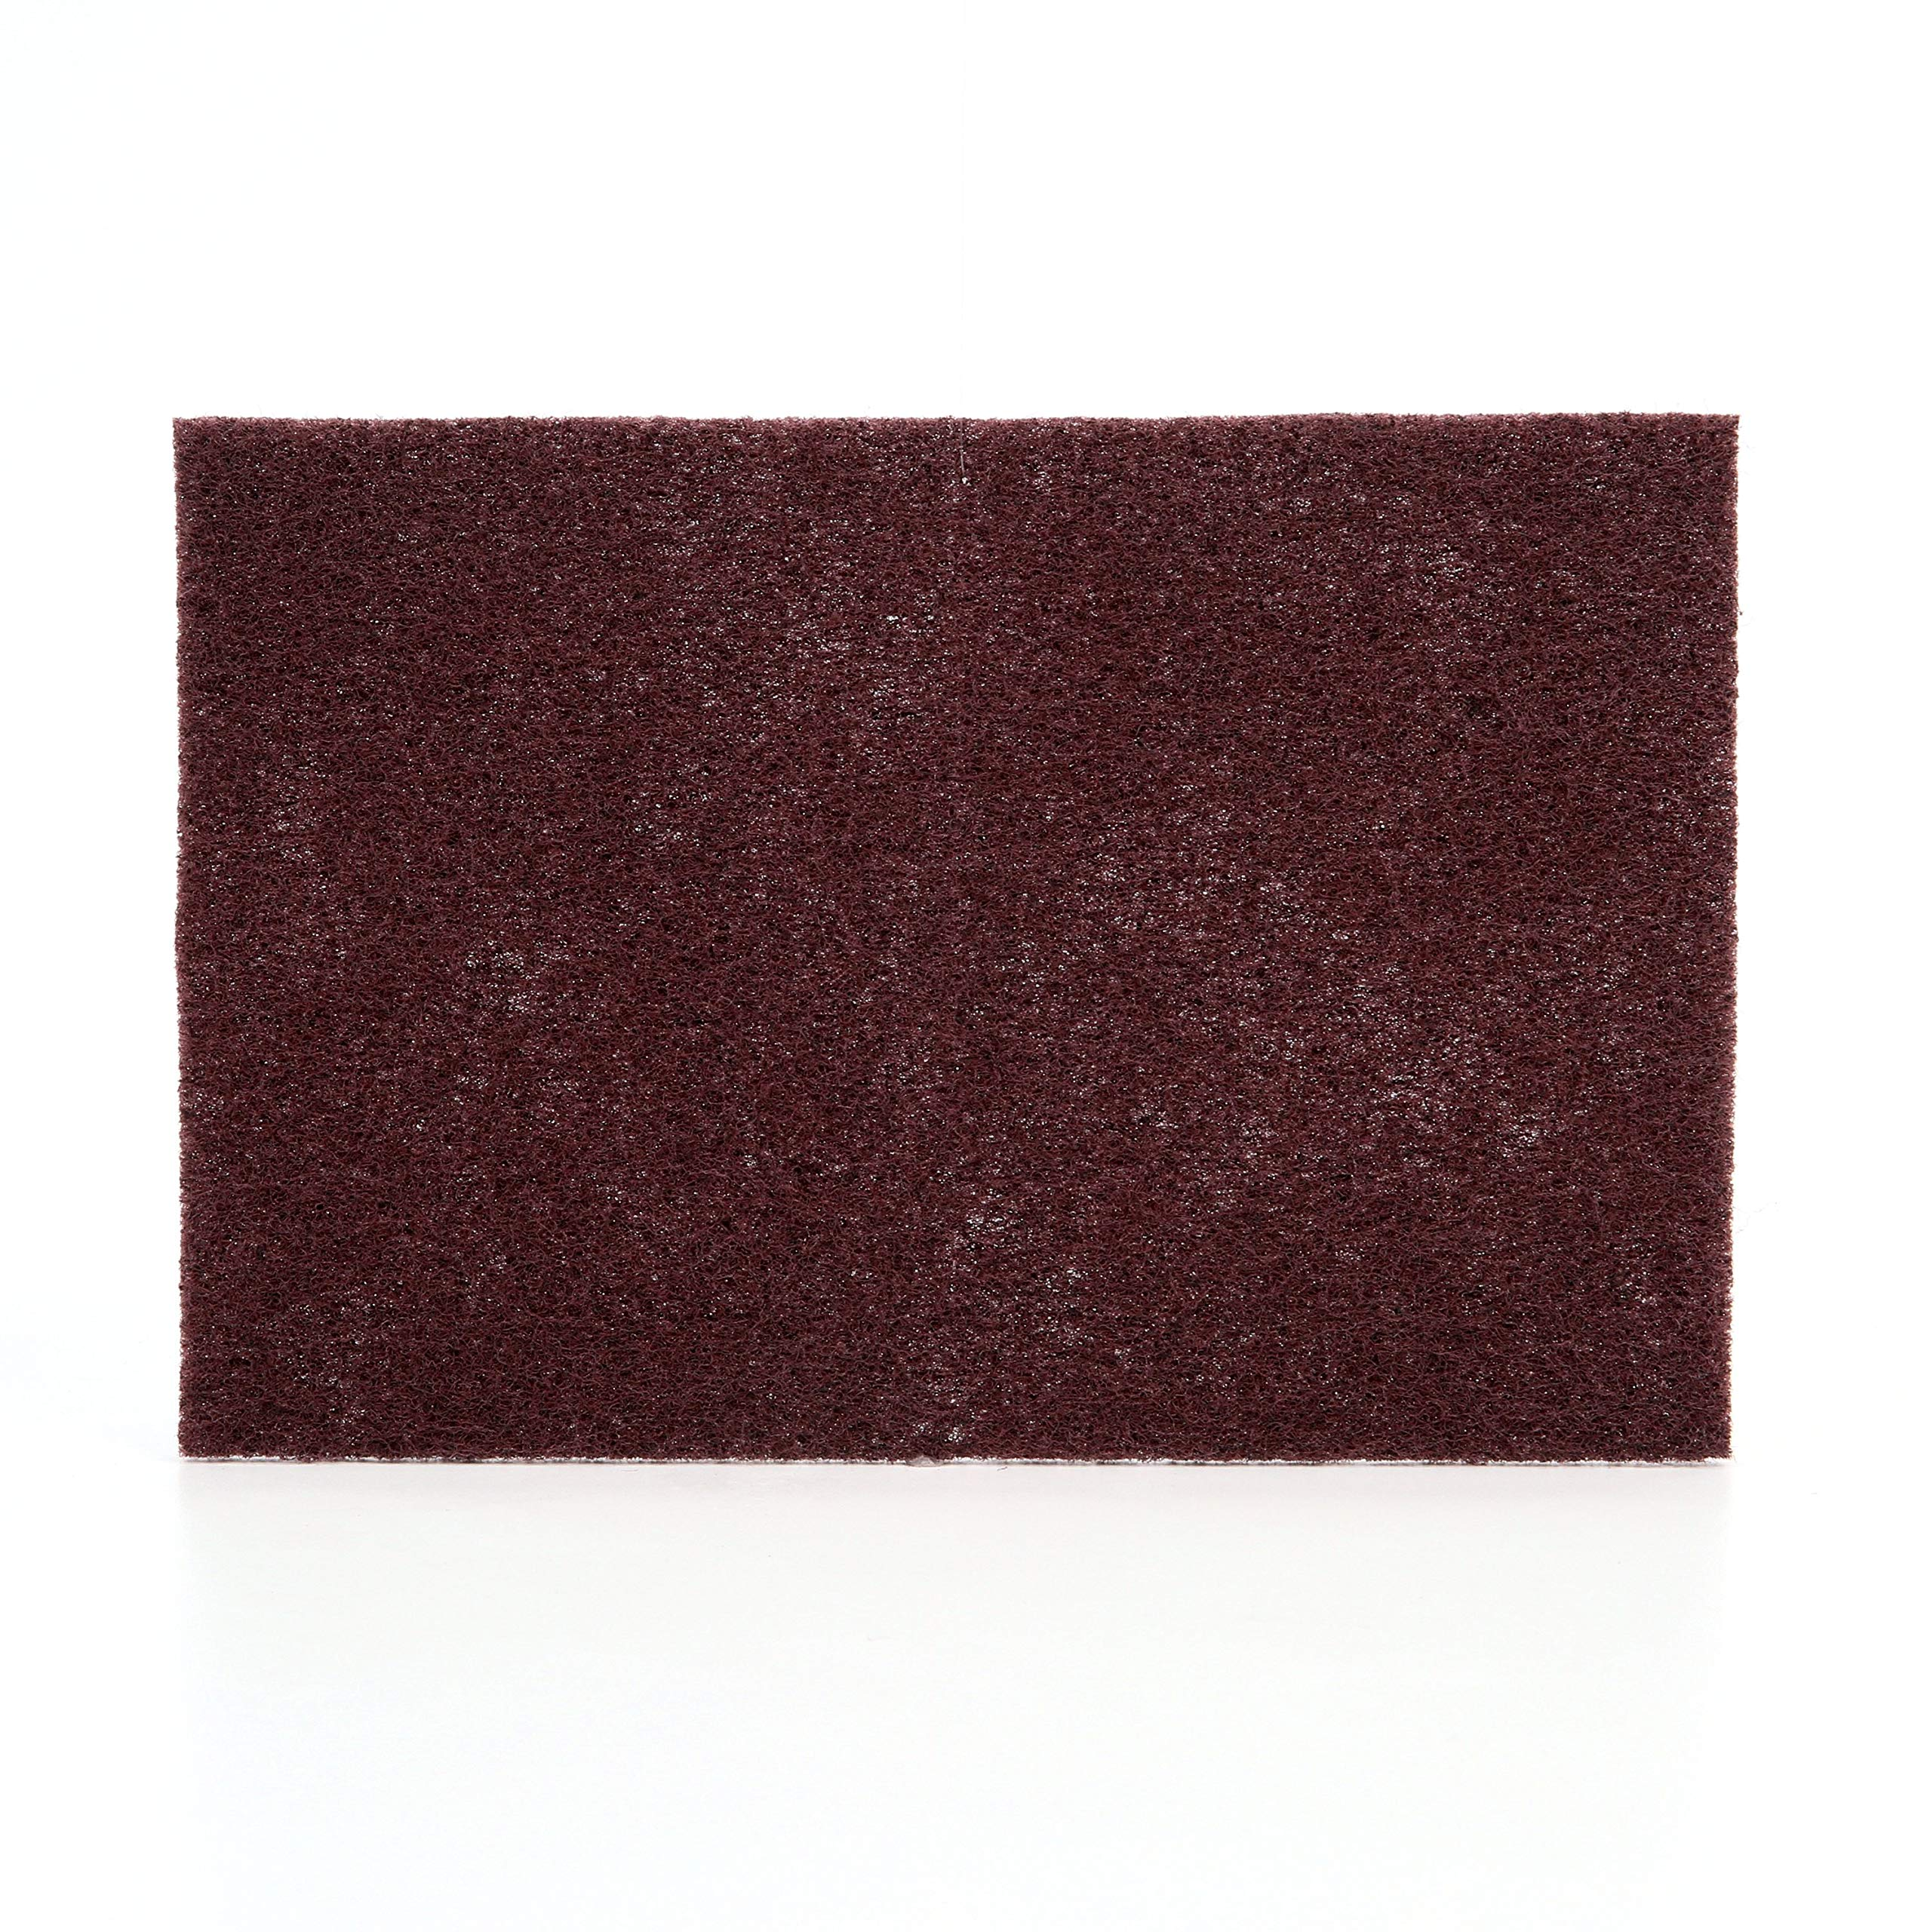 Scotch-Brite(TM) Production Hand Pad 8447, Aluminum Oxide, 9'' Length x 6'' Width, Very Fine Grit, Maroon  (Pack of 60) by Cubitron